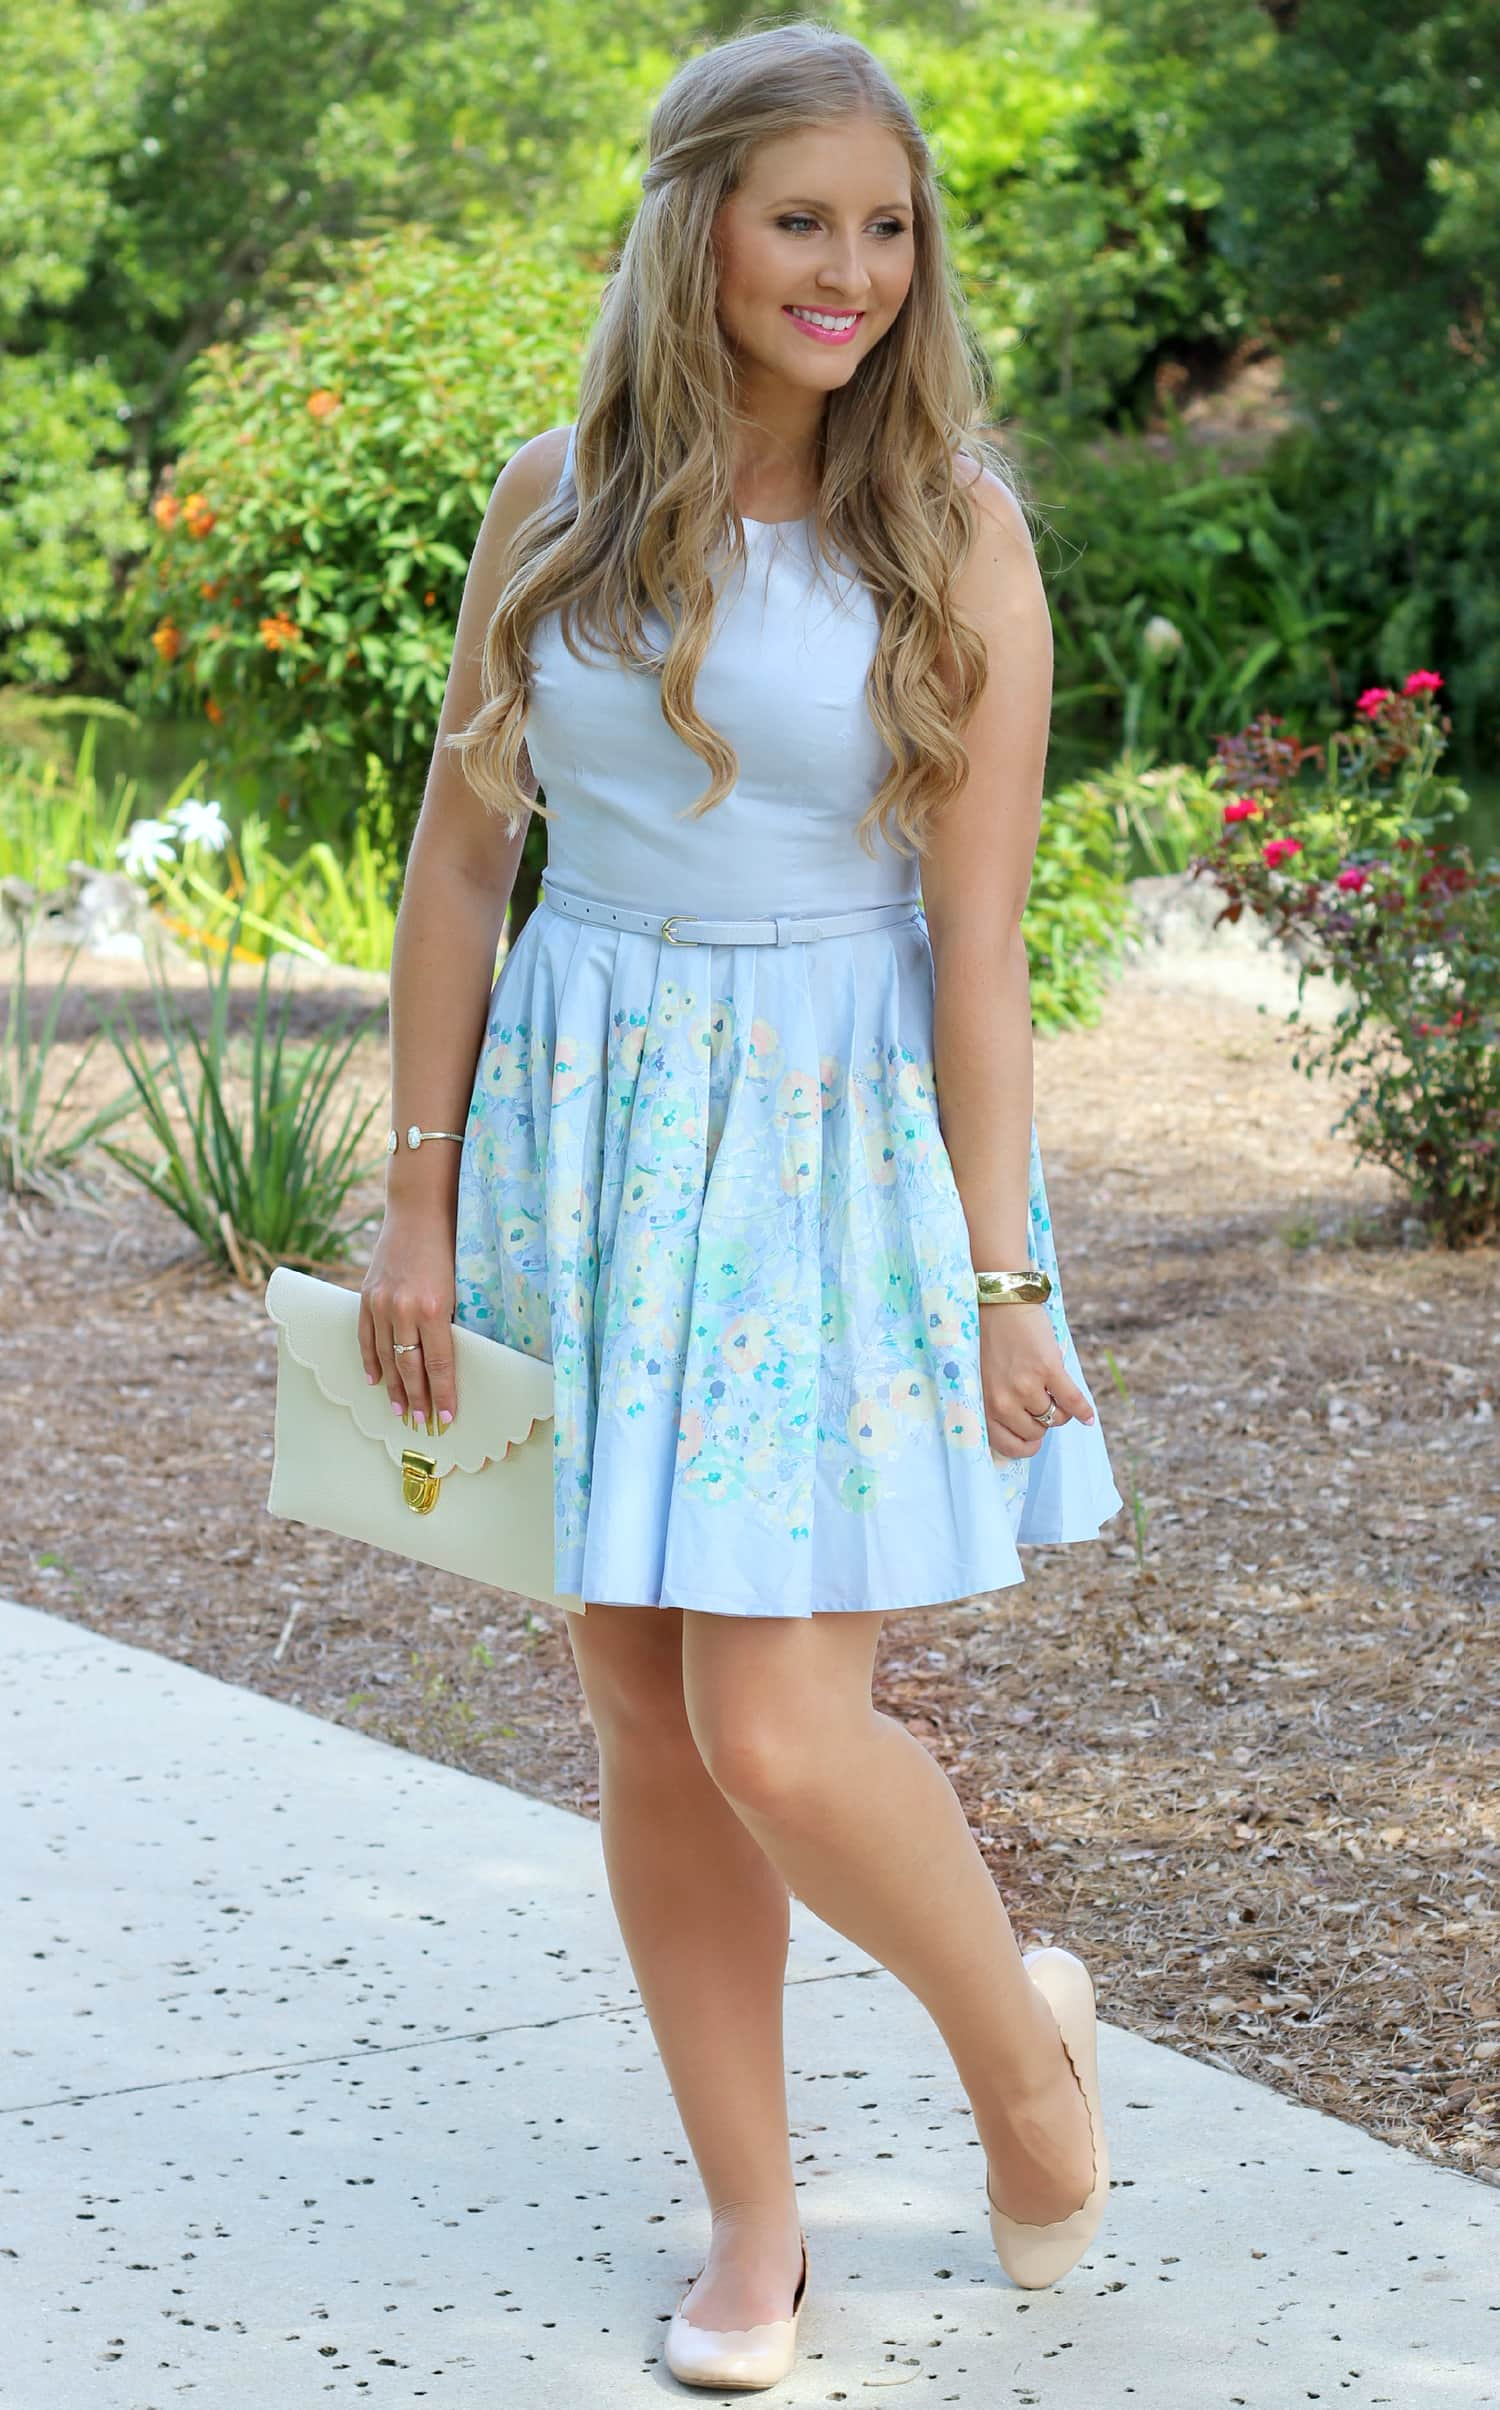 lauren-conrad-dress-hanes-hosiery-ashley-brooke-nicholas-florida-fashion-blogger